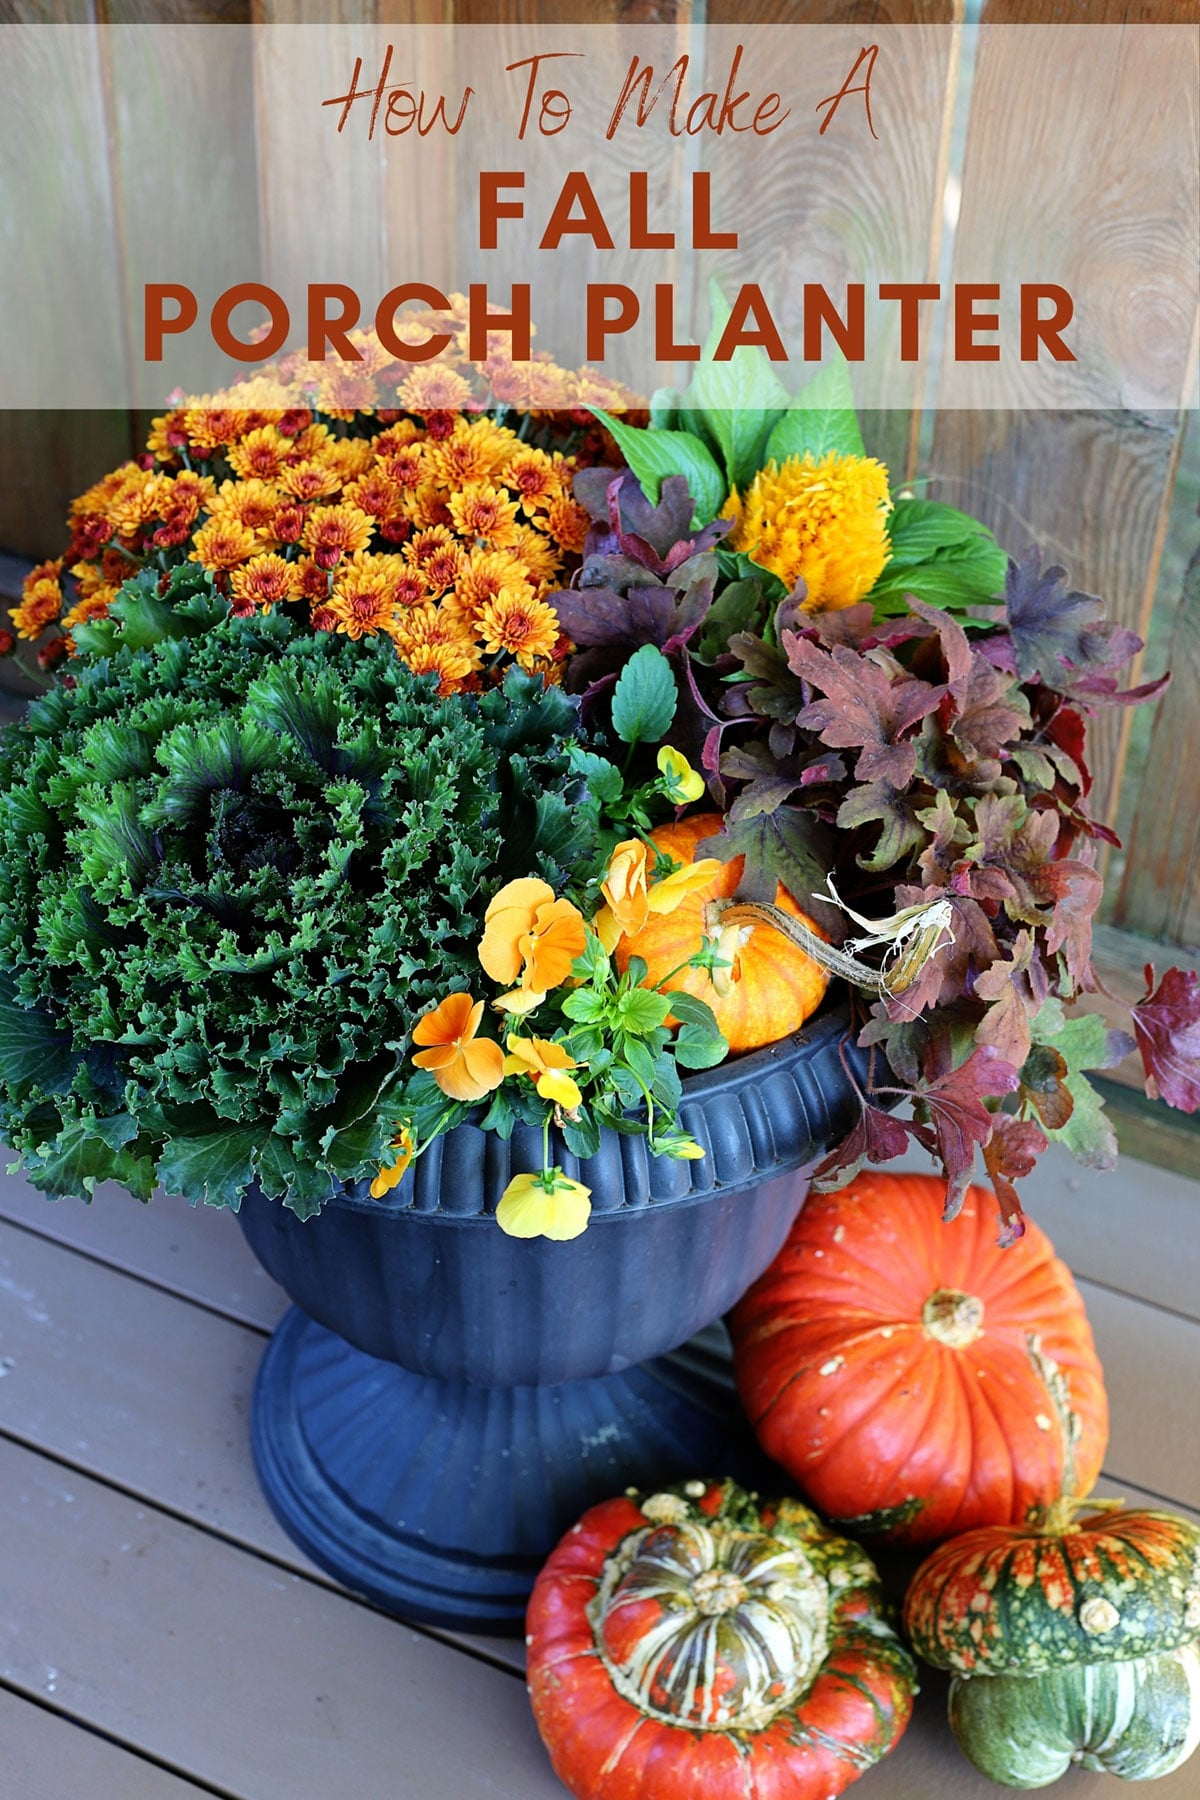 Fall porch planter surrounded by gourds.